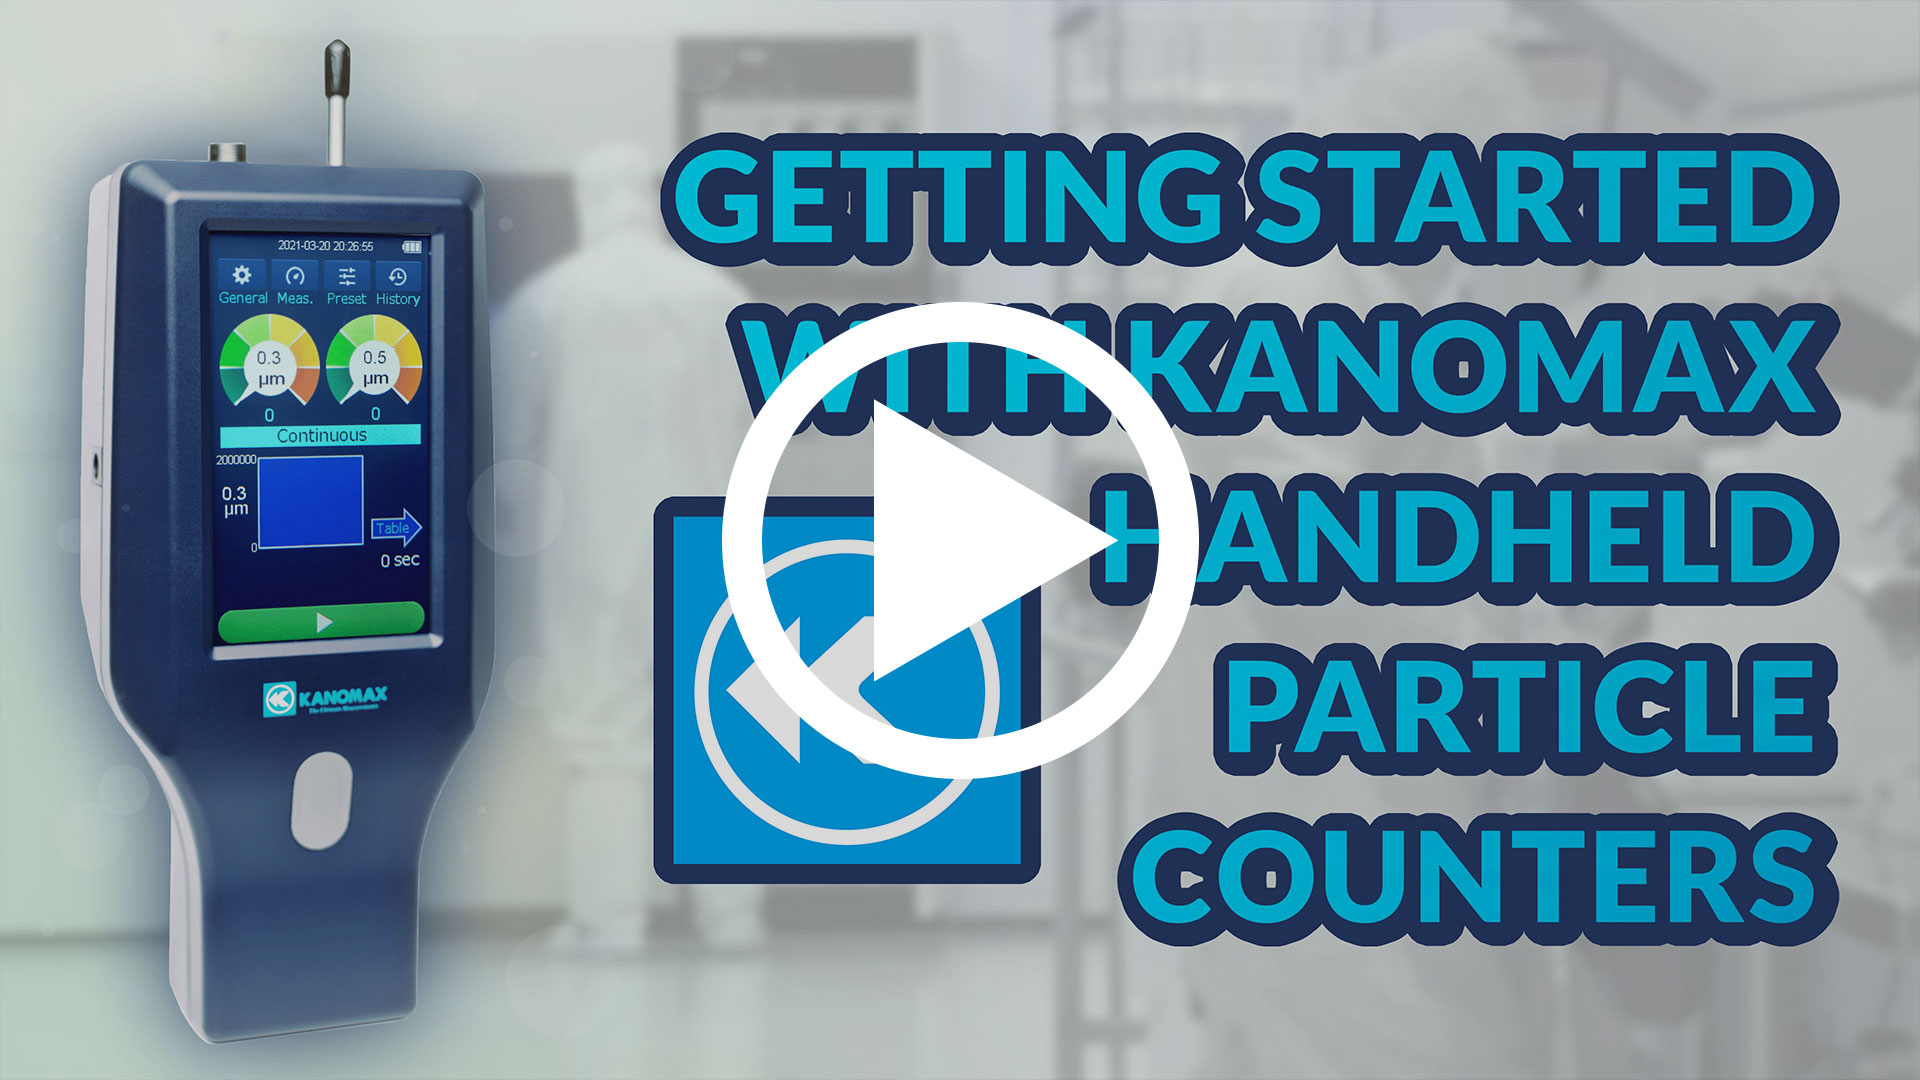 Getting Started with Kanomax Handheld Particle Counters Image